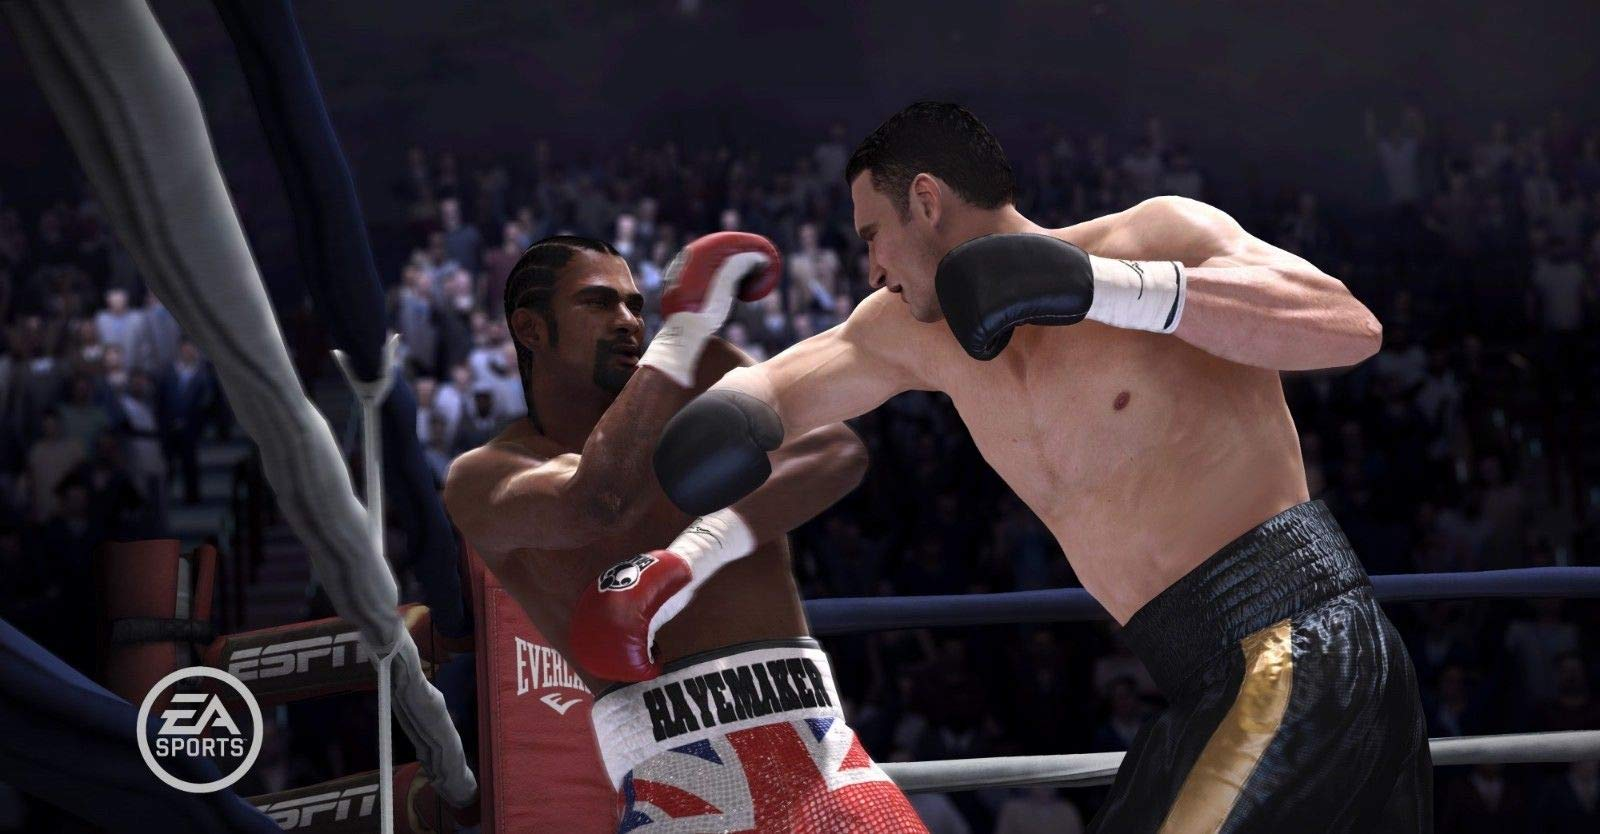 Fight Night Champion - Xbox 360/Xbox One by EA Games (Image #3)